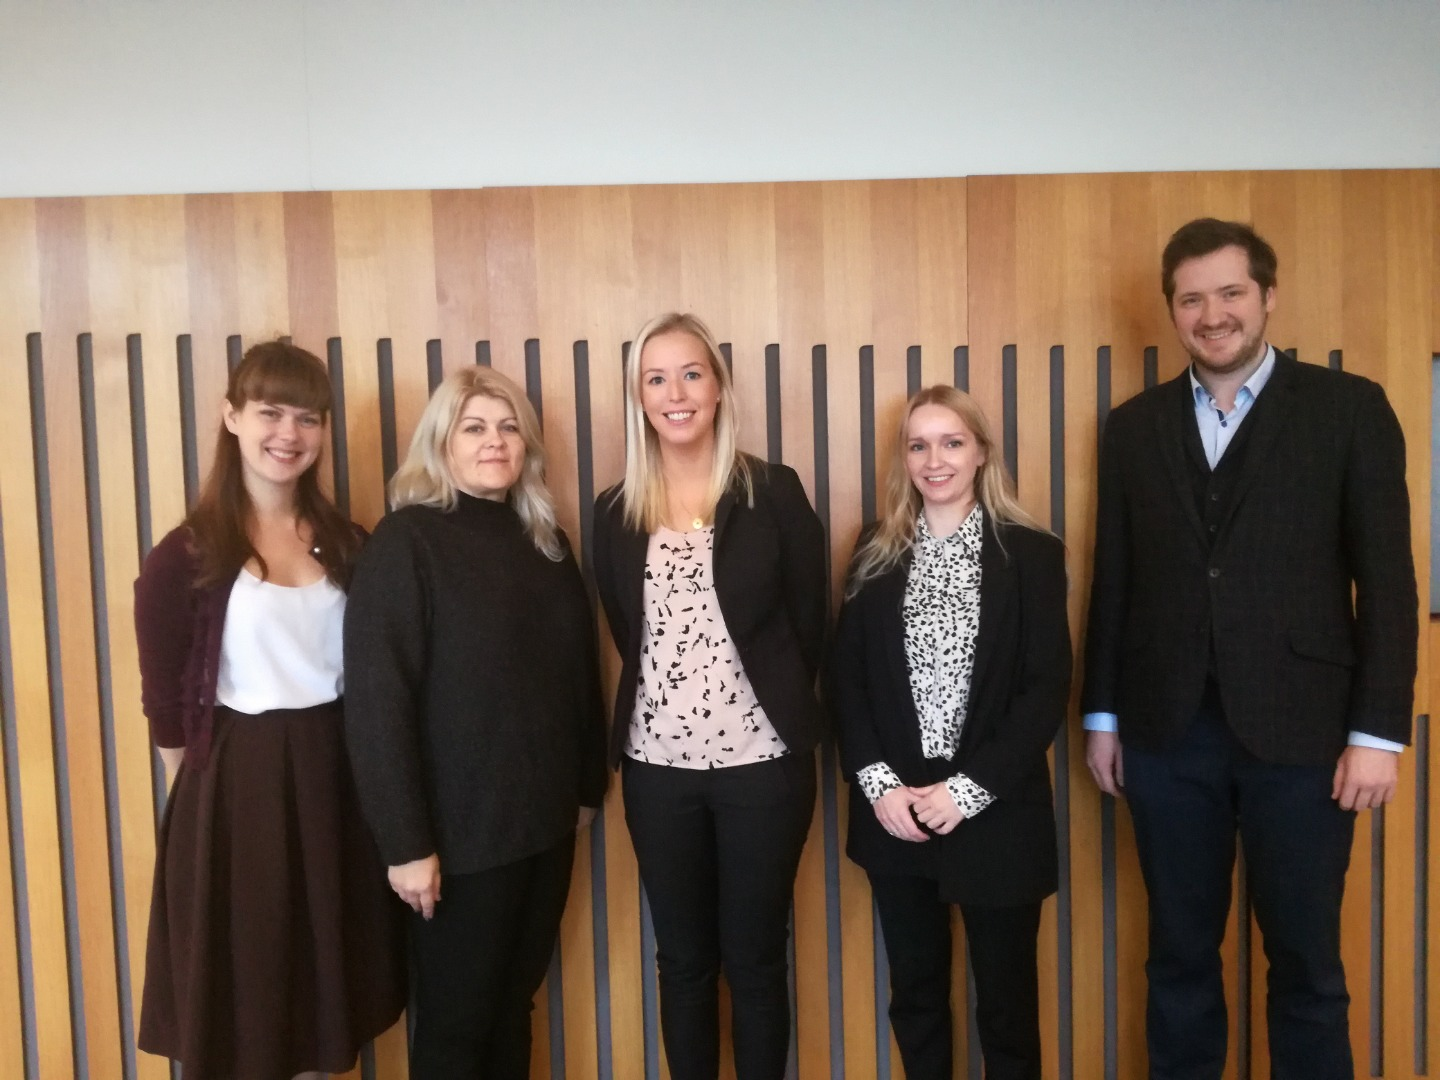 """17.10.2019. During the project """"Role of an Assistant to Judge in the Effective Organization of the Work of the Supreme Court"""", the Supreme Court of Iceland was visited by Sanita Jefimova, Assistant to Chair of the Department of Criminal Cases, Madara Senbruna, Assistant to Judge of the Department of Administrative Cases, and Reinis Odins, Legal Research Counsel to the Department of Civil Cases. The project implemented by the Supreme Court's Administration was supported by the Nordic-Baltic Mobility Program. The employees visited several Nordic Supreme Courts."""